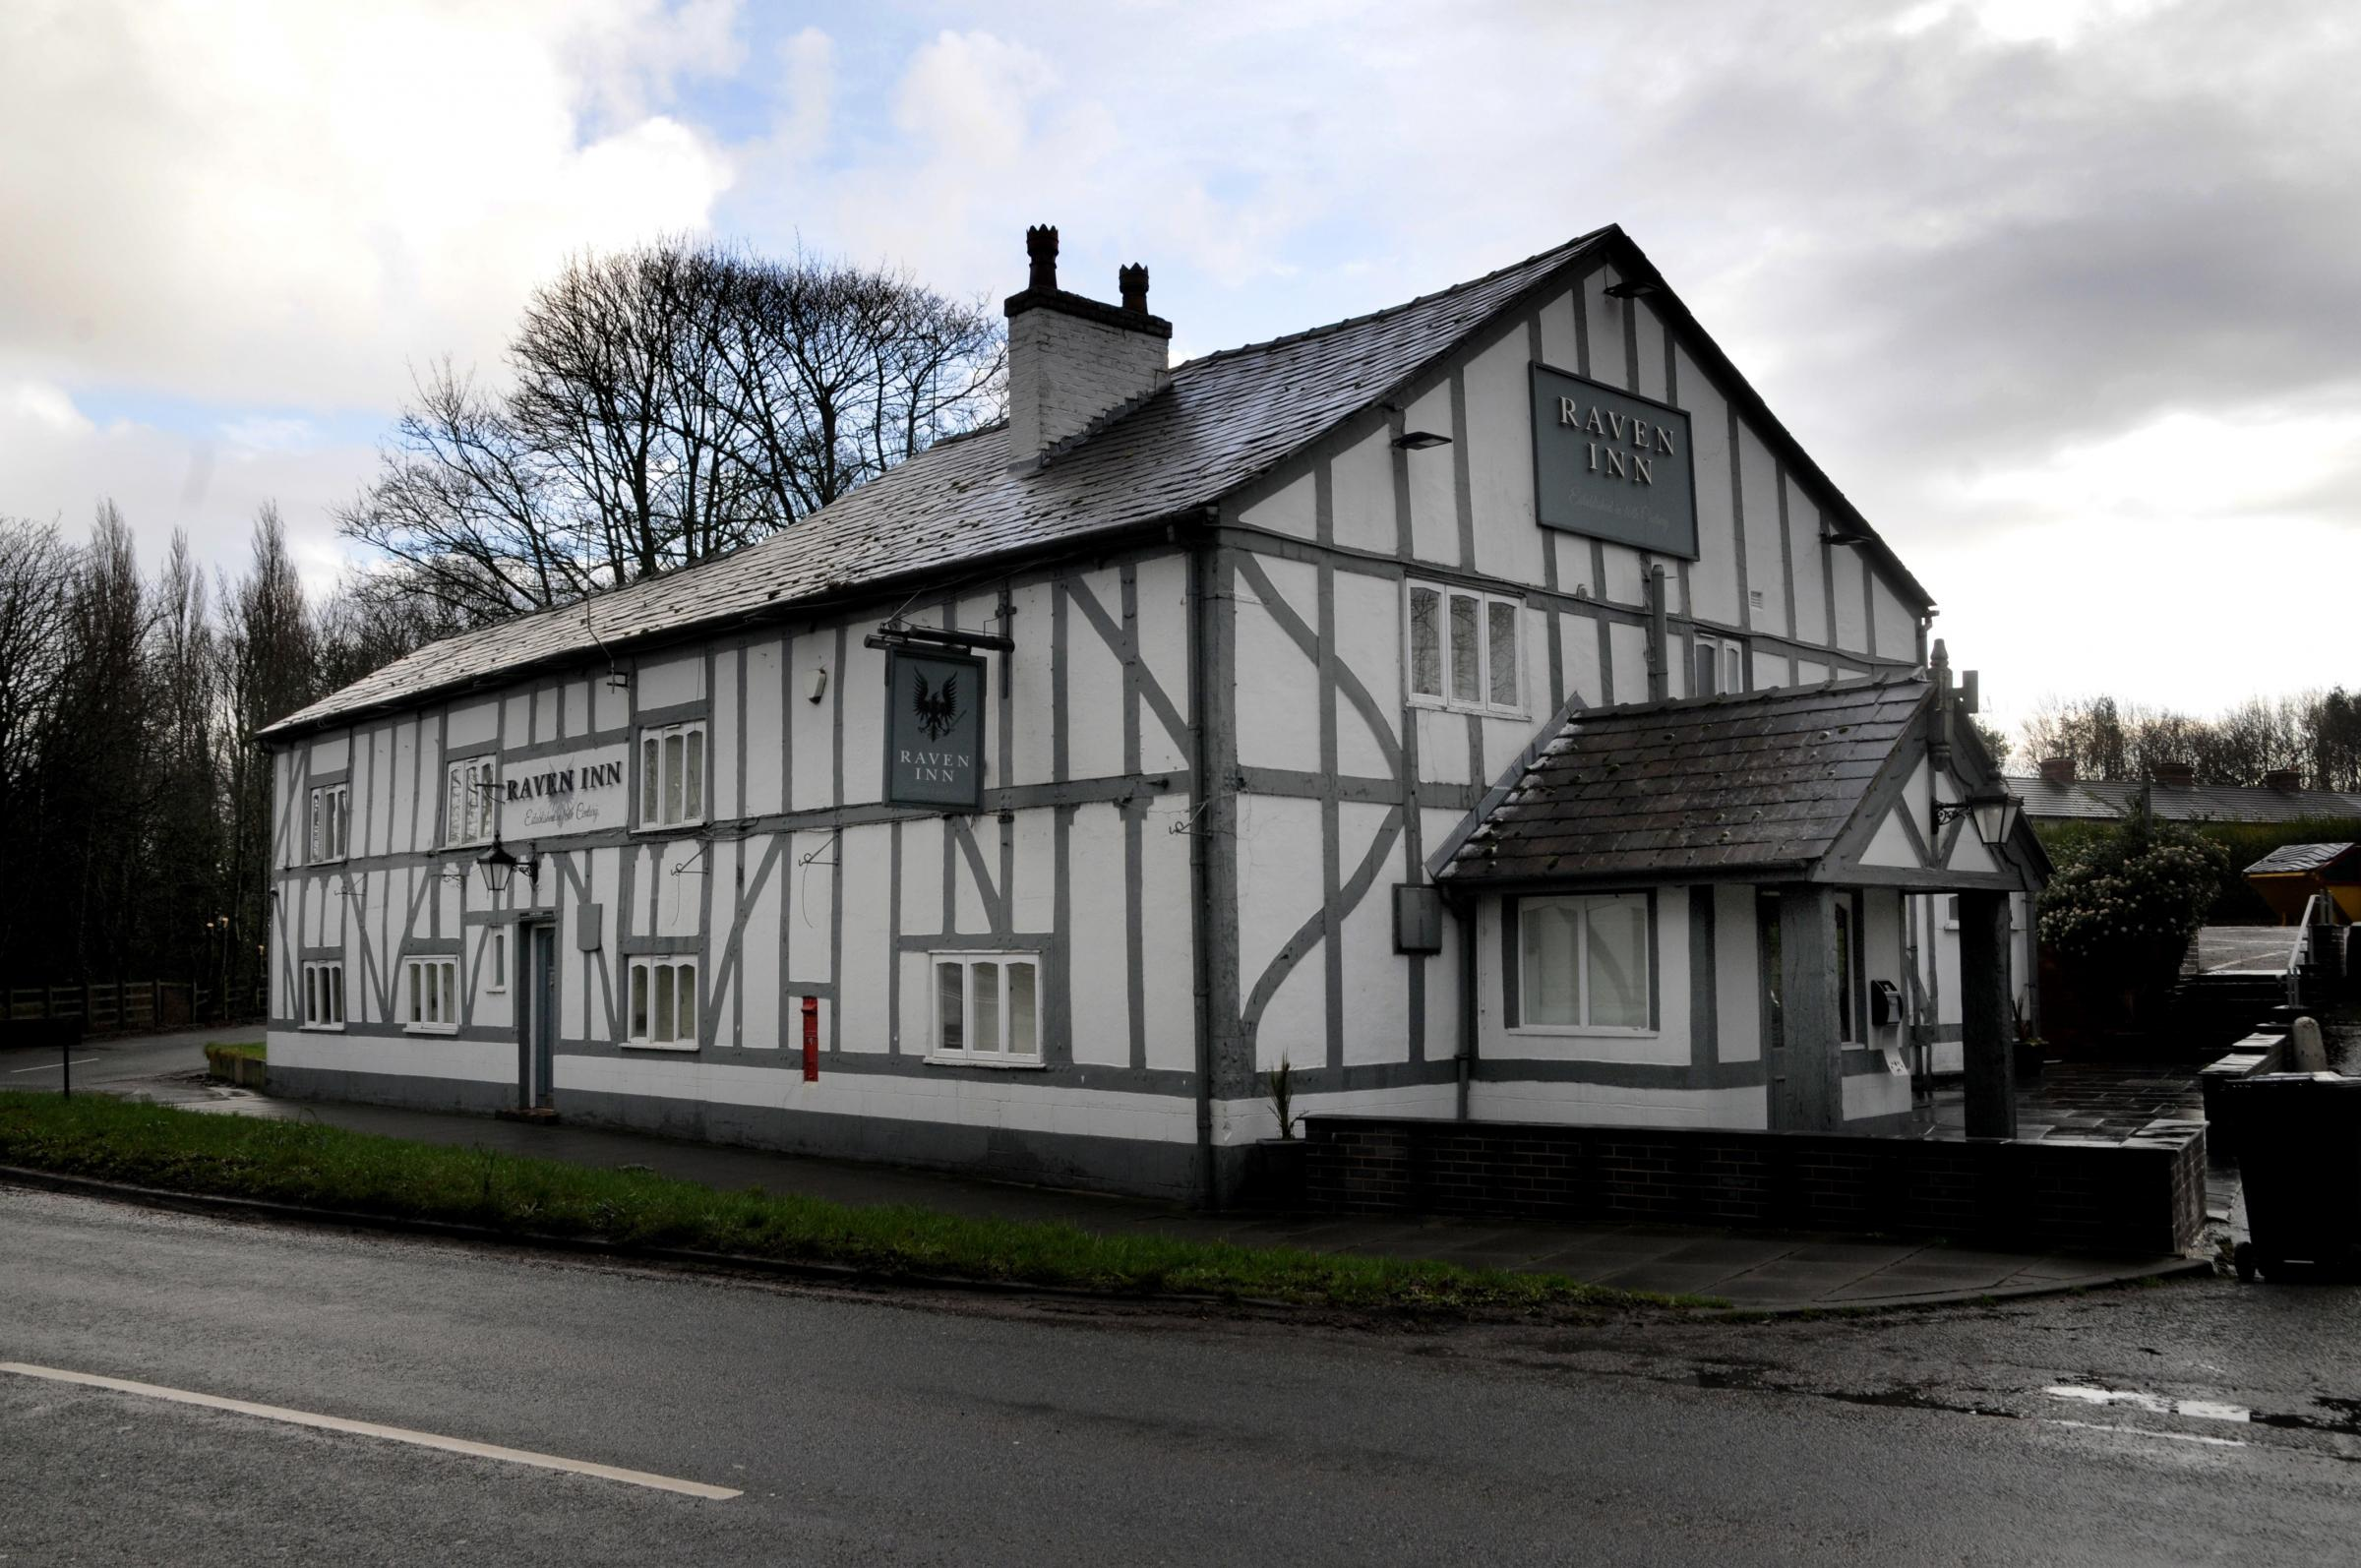 Plans to demolish the Raven Inn pub in Glazebury have been withdrawn by the developer.